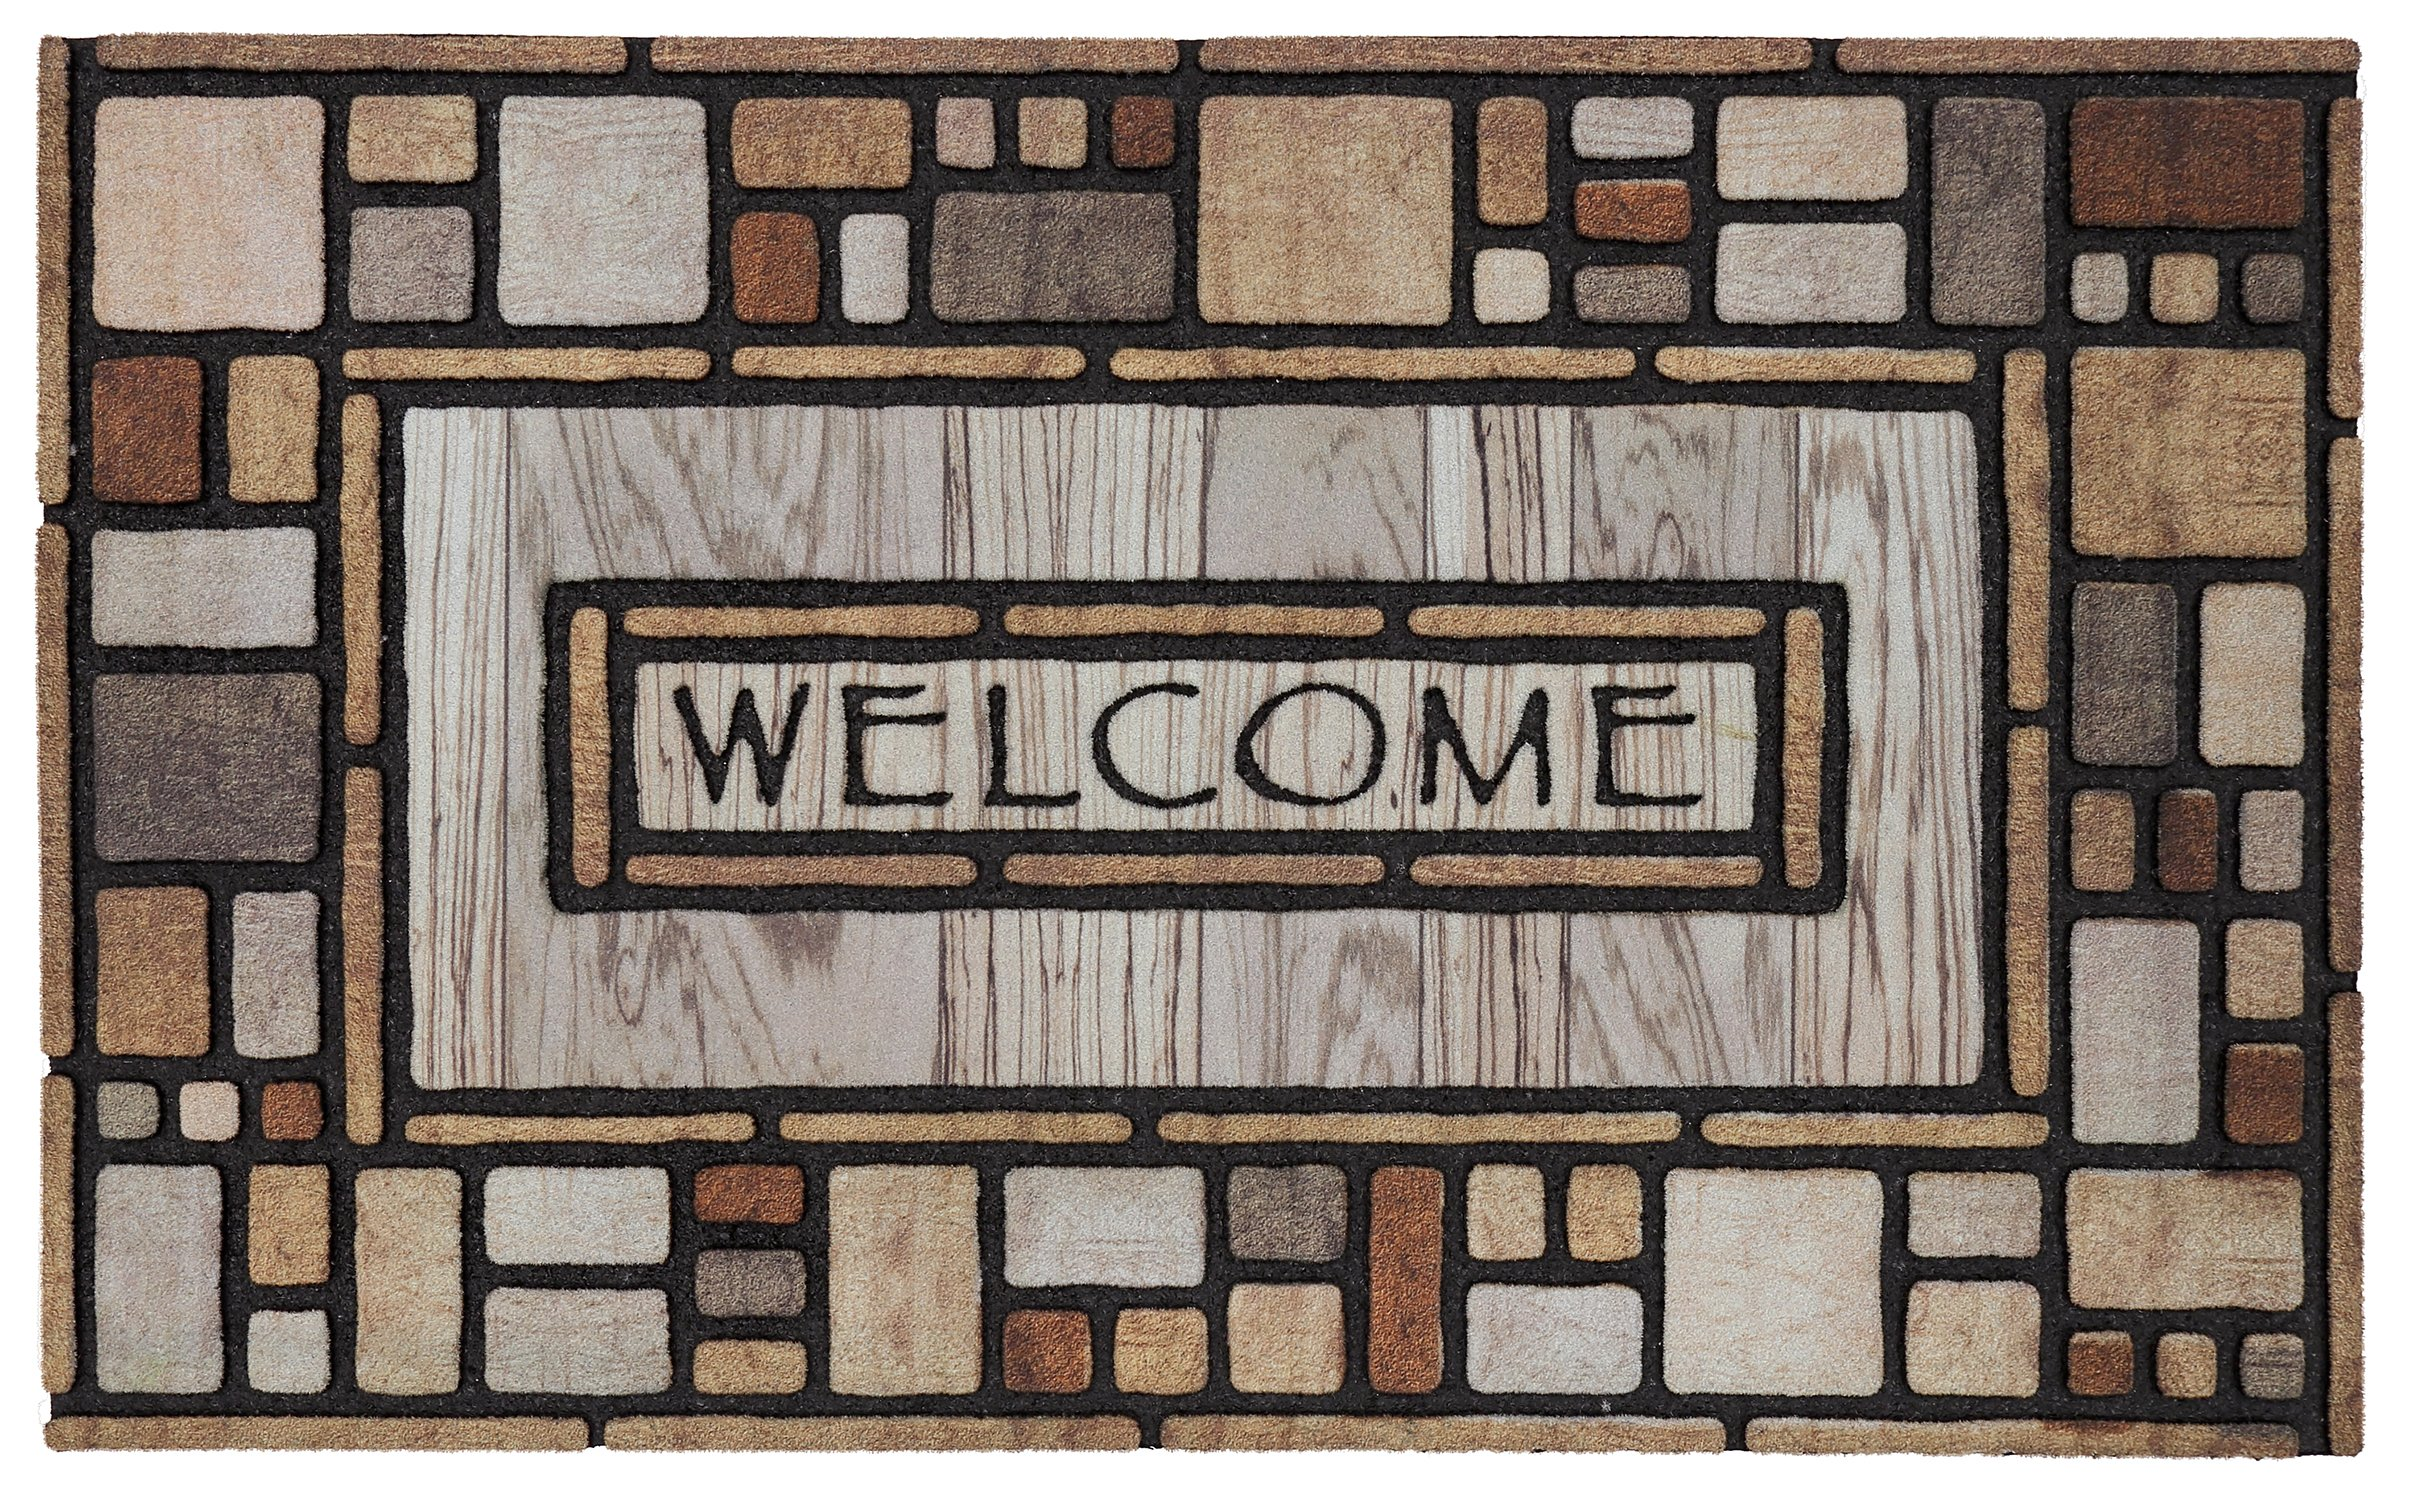 Mohawk Home Doorscapes Drifted Nature Mat, 1'6x2'6, Multi by Mohawk Home